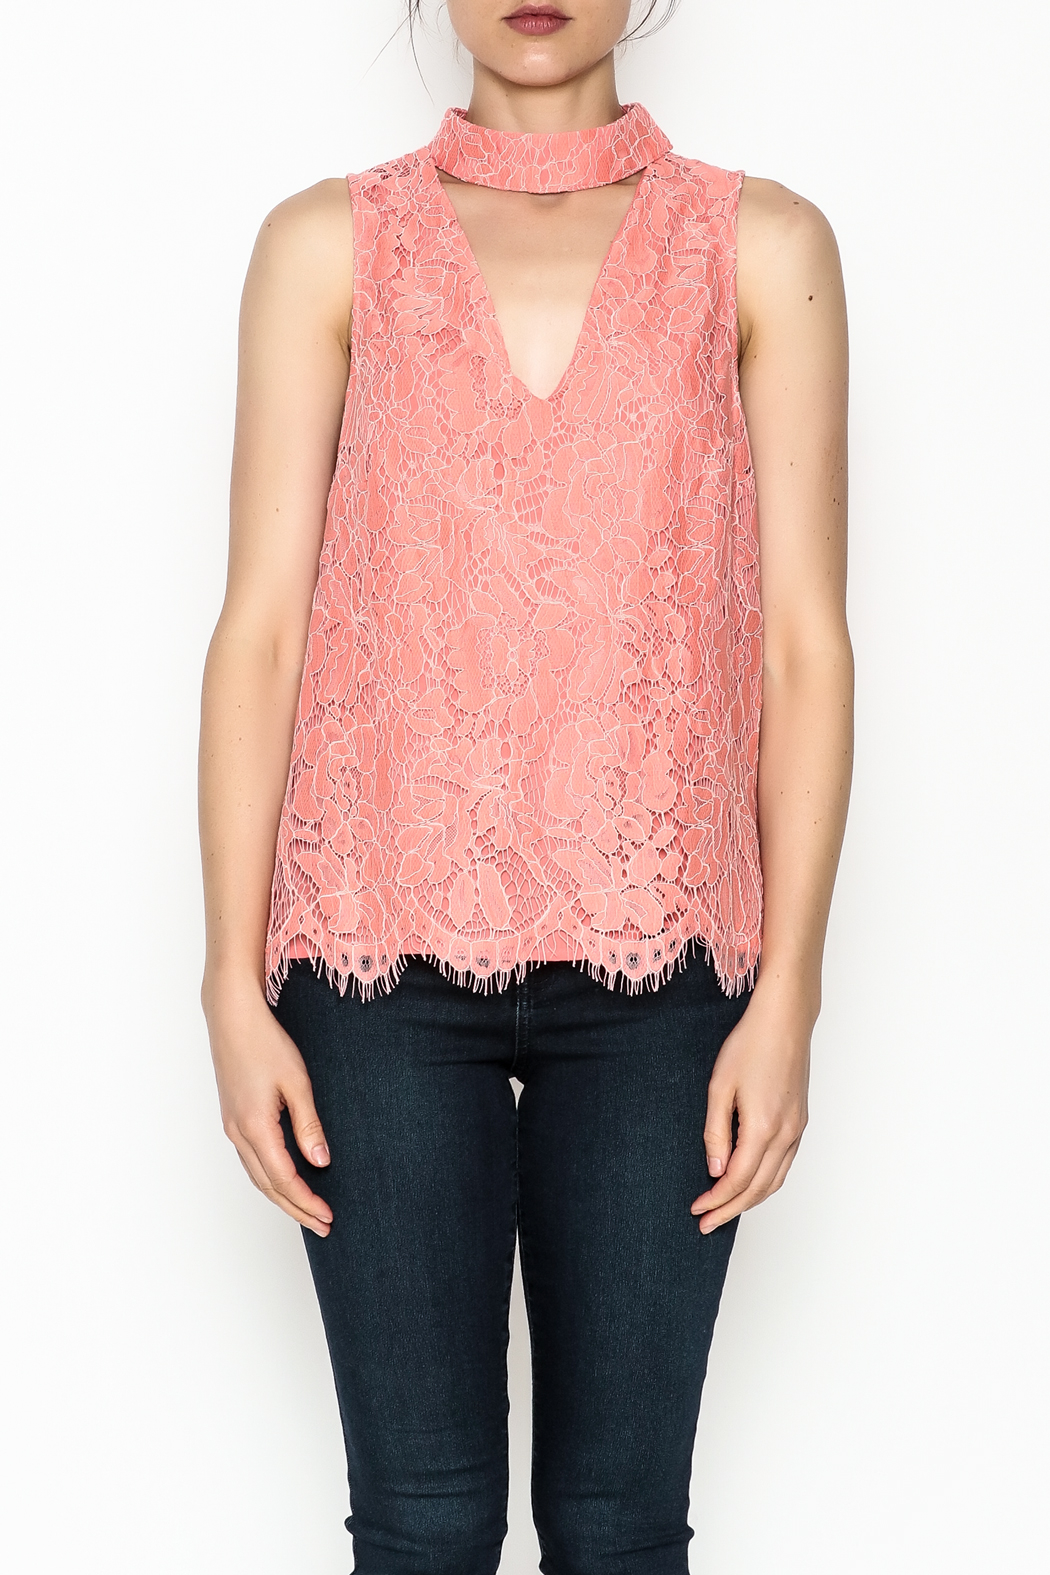 Do & Be Coral Lace Choker Top - Front Full Image